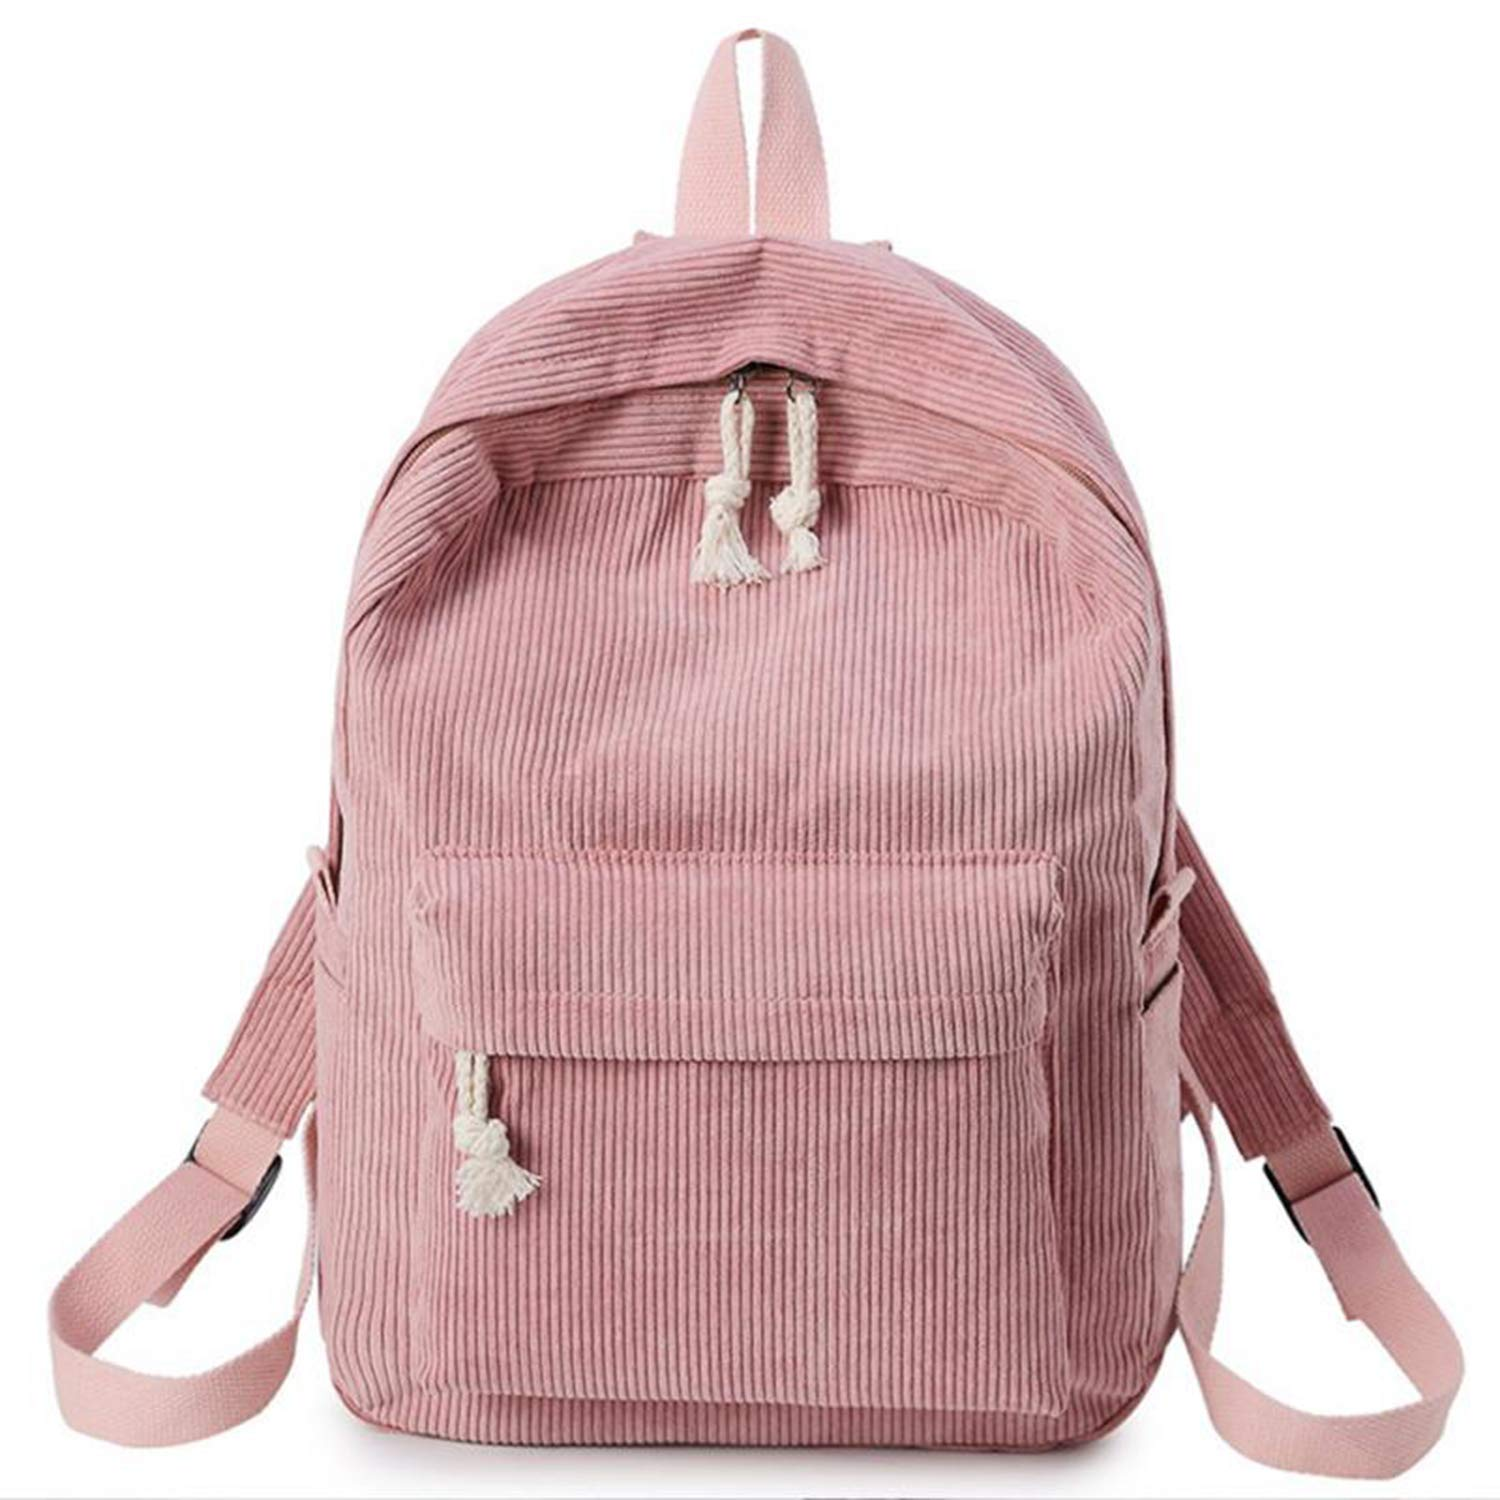 Amazon.com: New Bagpack Backpacks Women Nylon Bagpack Softback Solid Bag Fashion Soft Handle Mochilas Mujer Escolar Rucksack School Bag for Girls: Computers ...